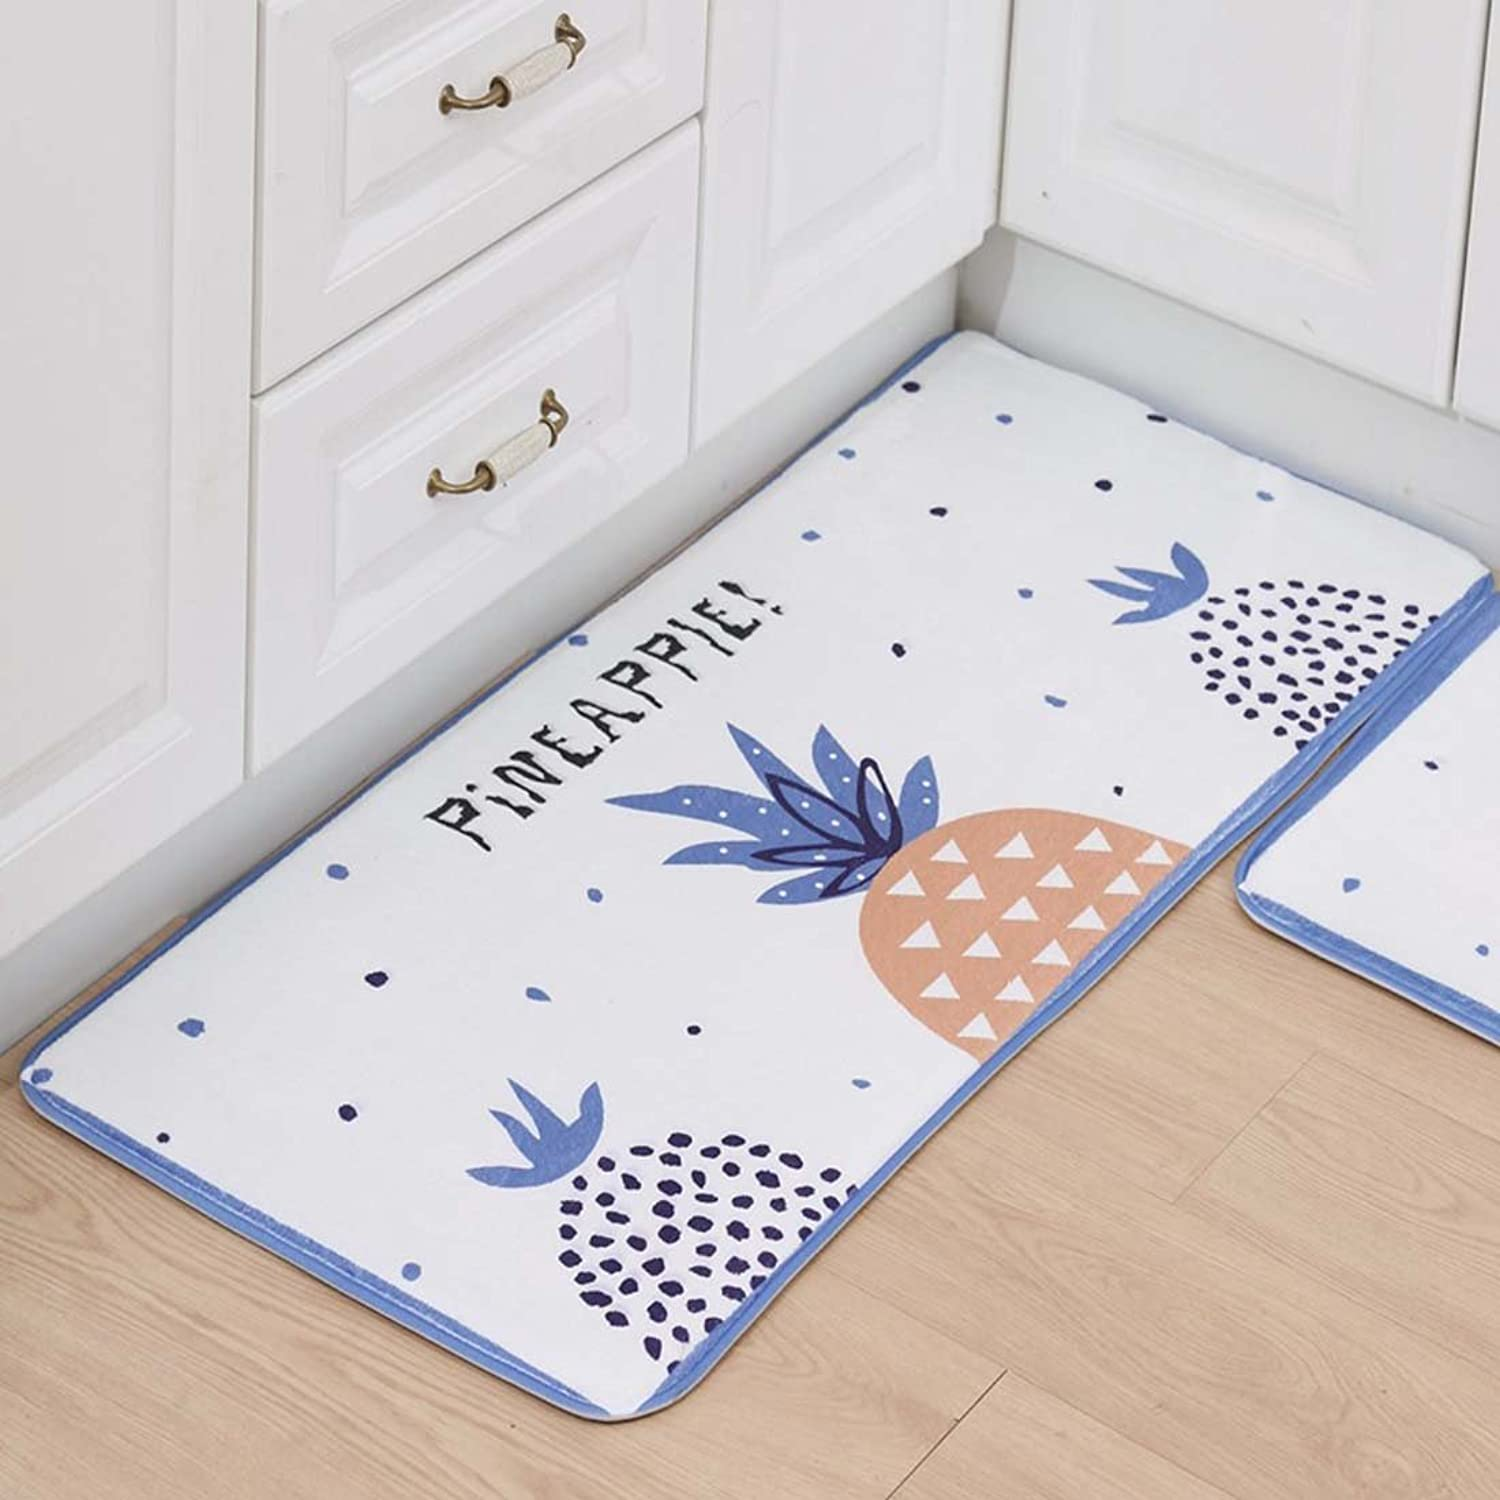 Indoor Outdoor 3PCS Doormat Entrance Welcome Mat Absorbent Runner Inserts Non Slip Entry Rug Funny Small Pineapple Pattern, White Background, Home Decor Inside Floor Carpet 15 x23  19 x31  19 x47